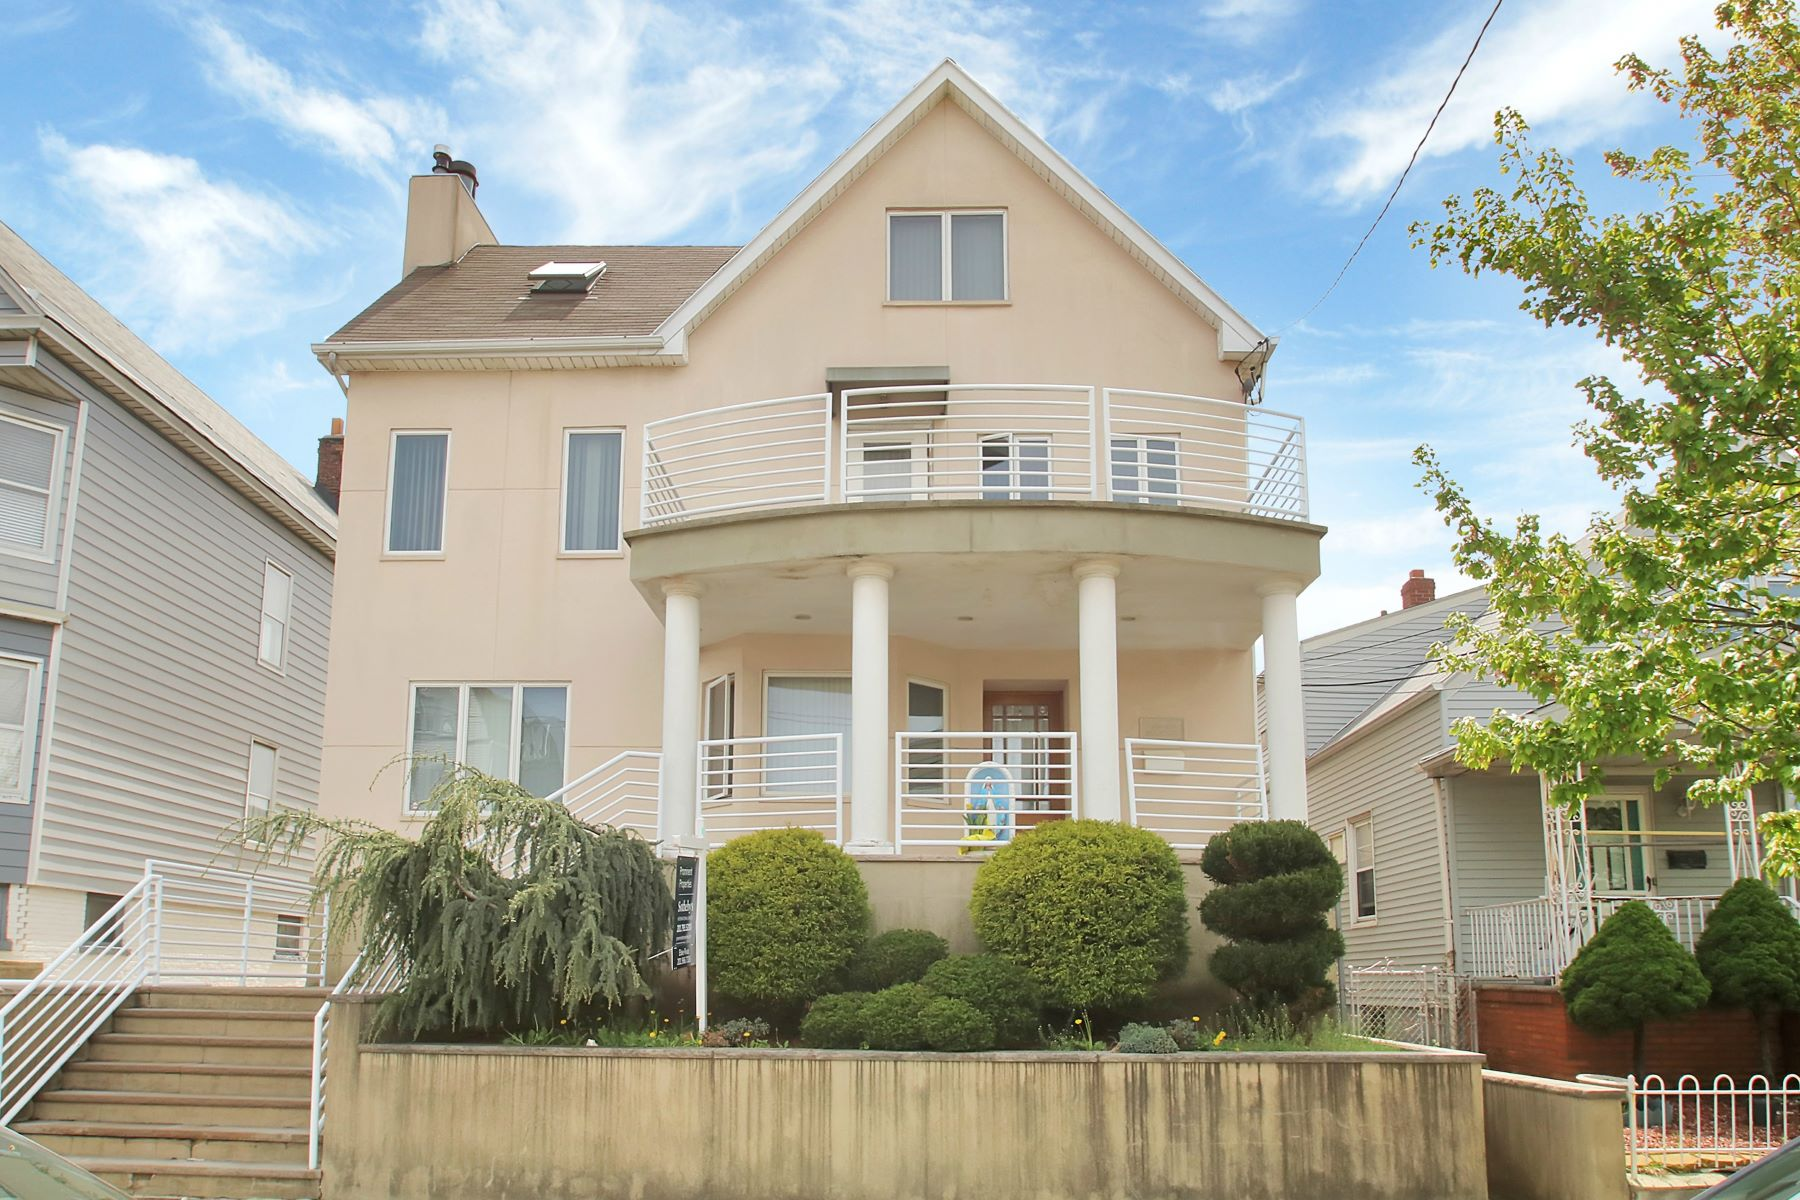 多户住宅 为 销售 在 Exceptional one of a kind colonial Home 140 West 25th Street Bayonne, 新泽西州 07002 美国